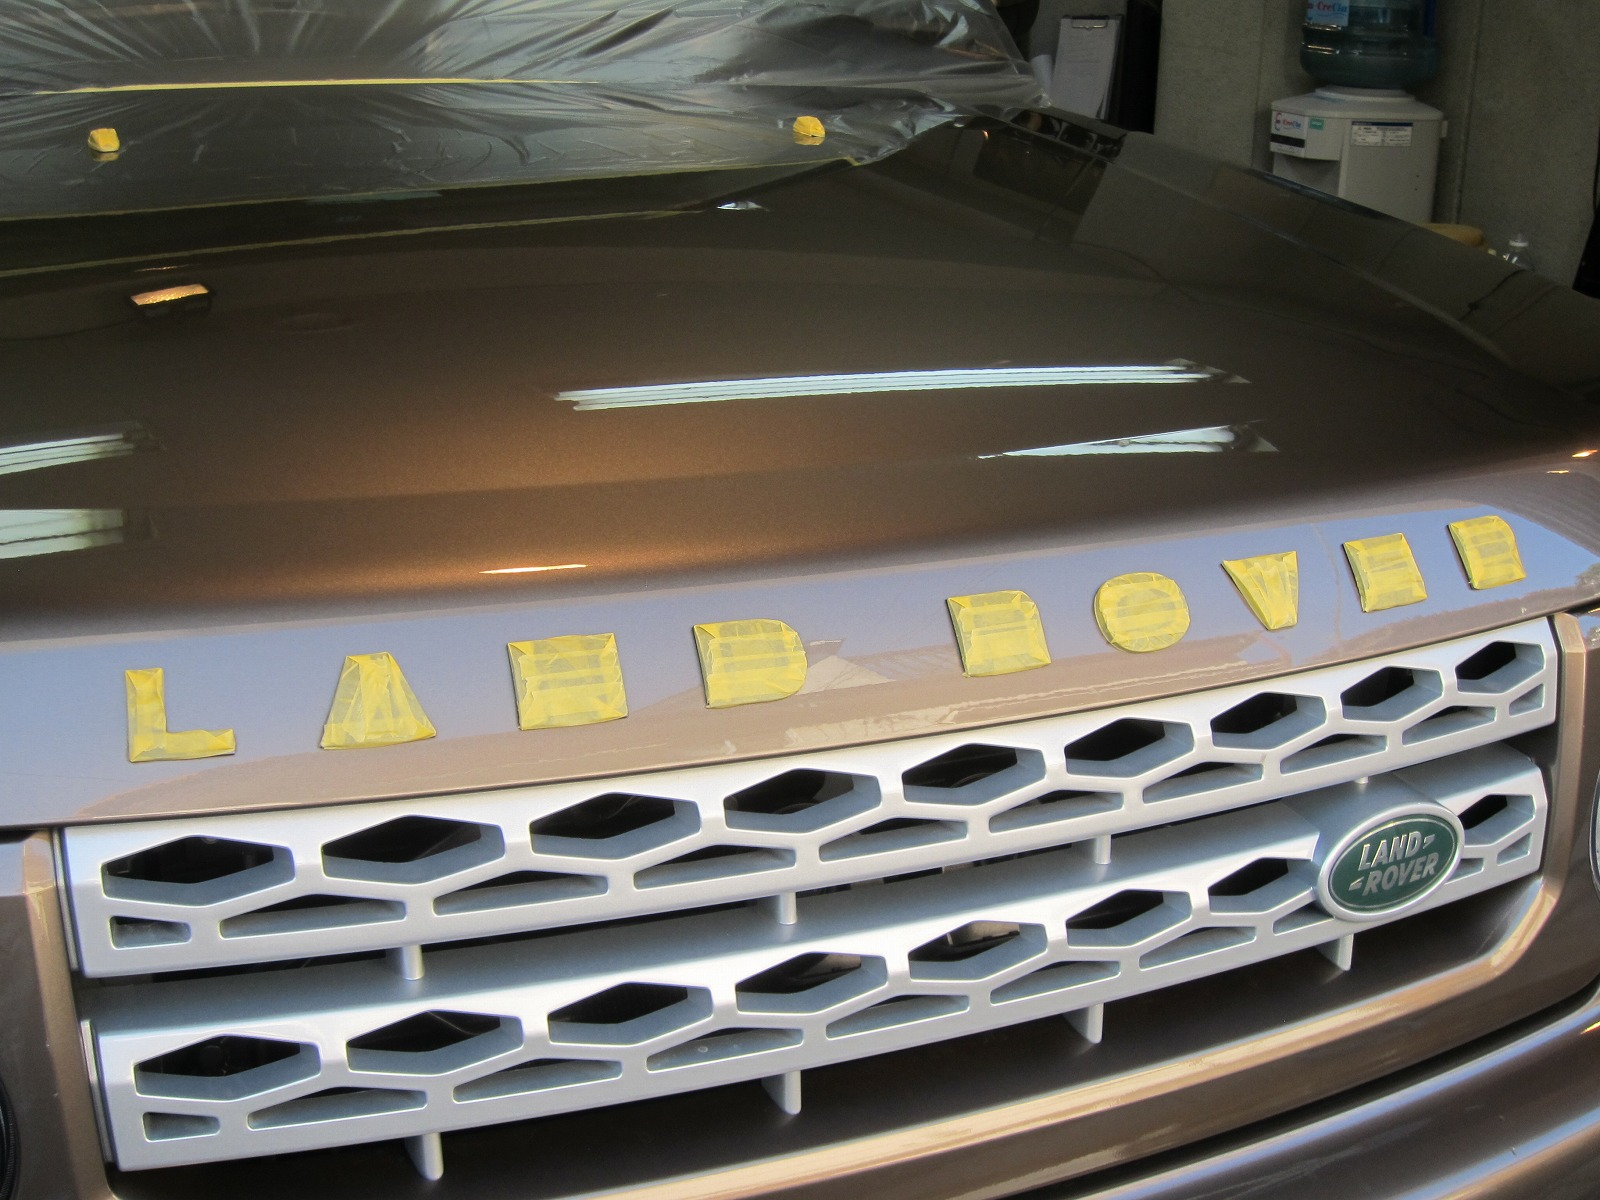 20160629-landrover-discovery4-05